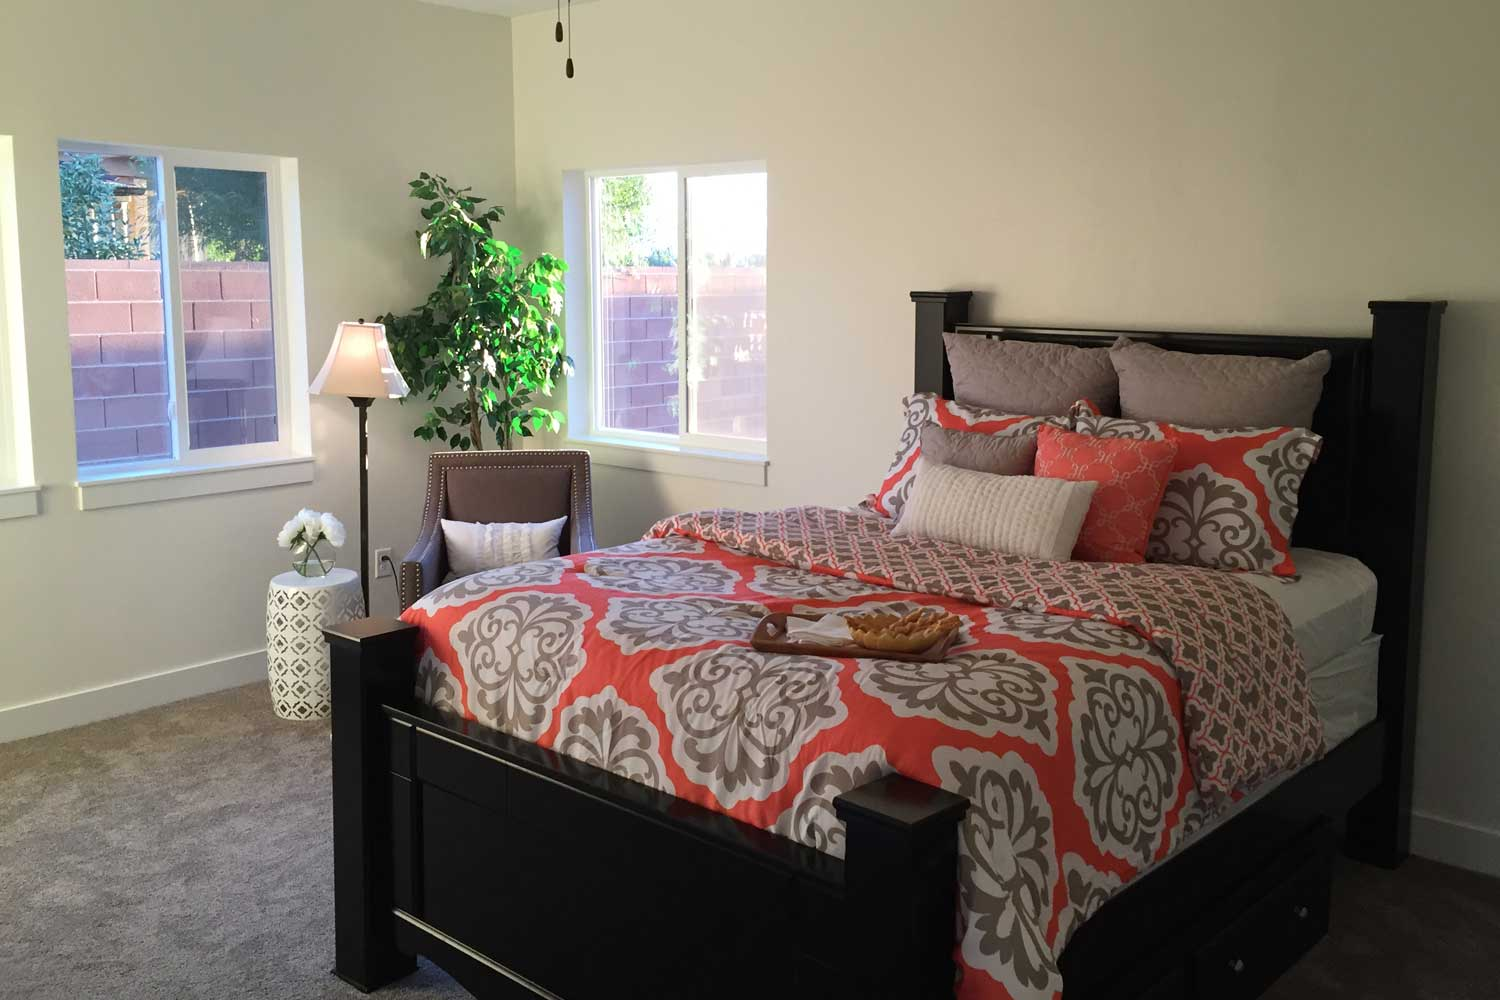 bedroom with beige carpet, queen bed and orange colored bedspread with sitting chair in the corner